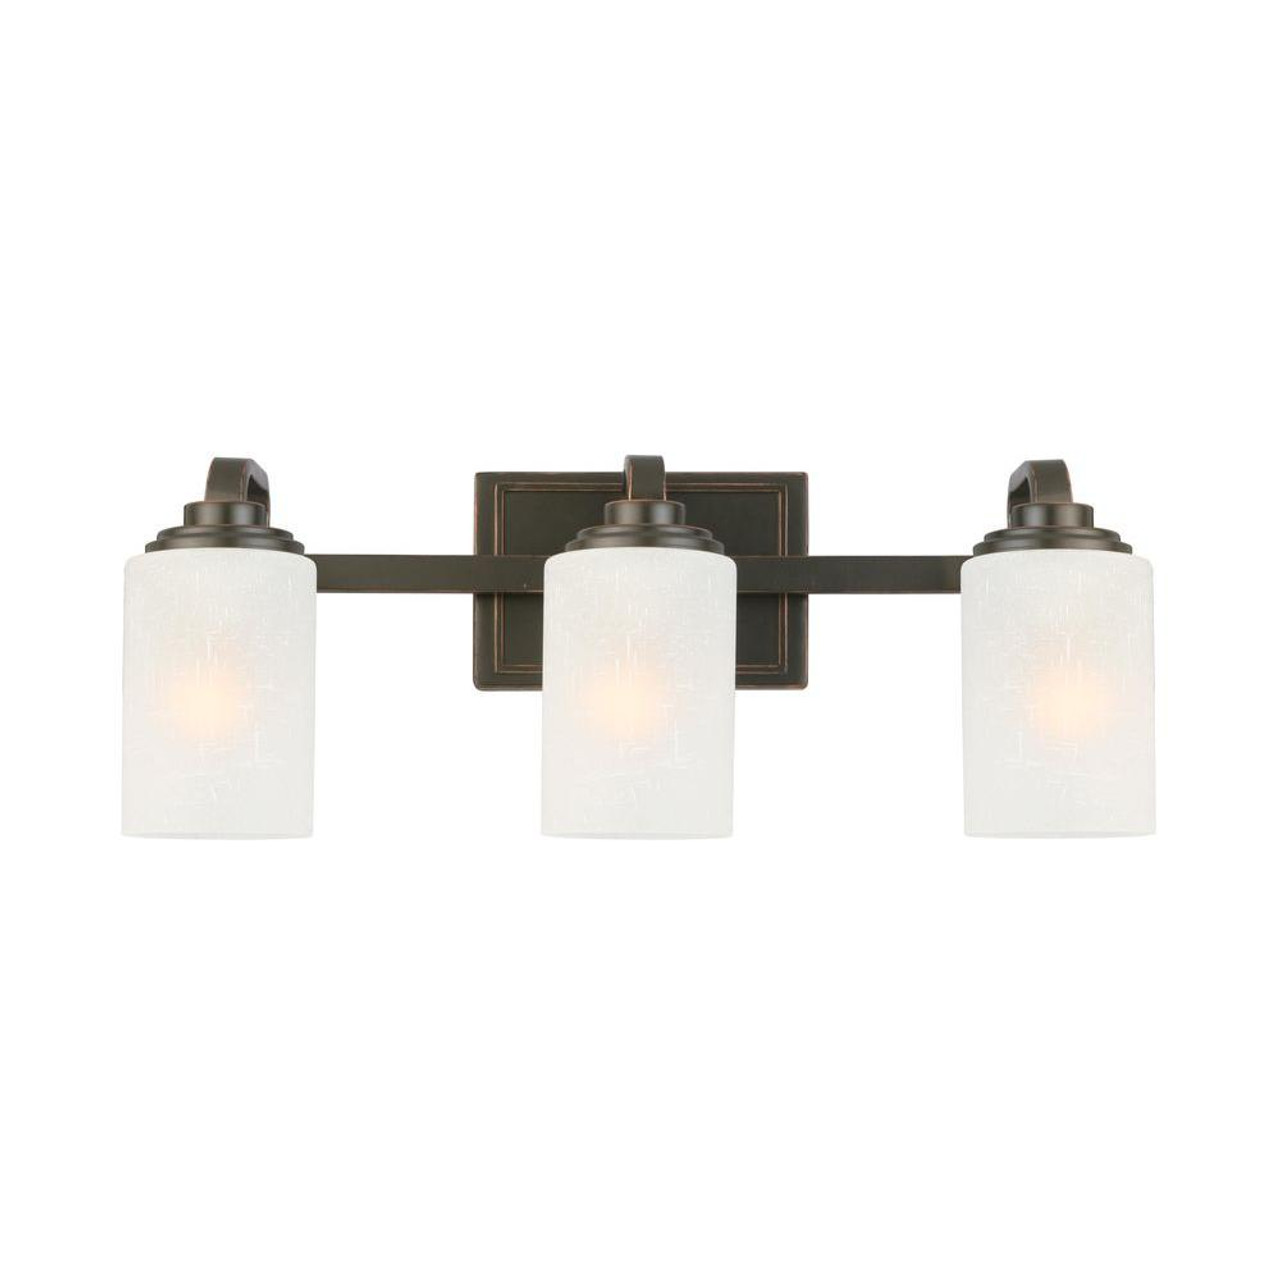 3-Light Oil-Rubbed Bronze Vanity Light w/ Frosted Patterned Glass Shade